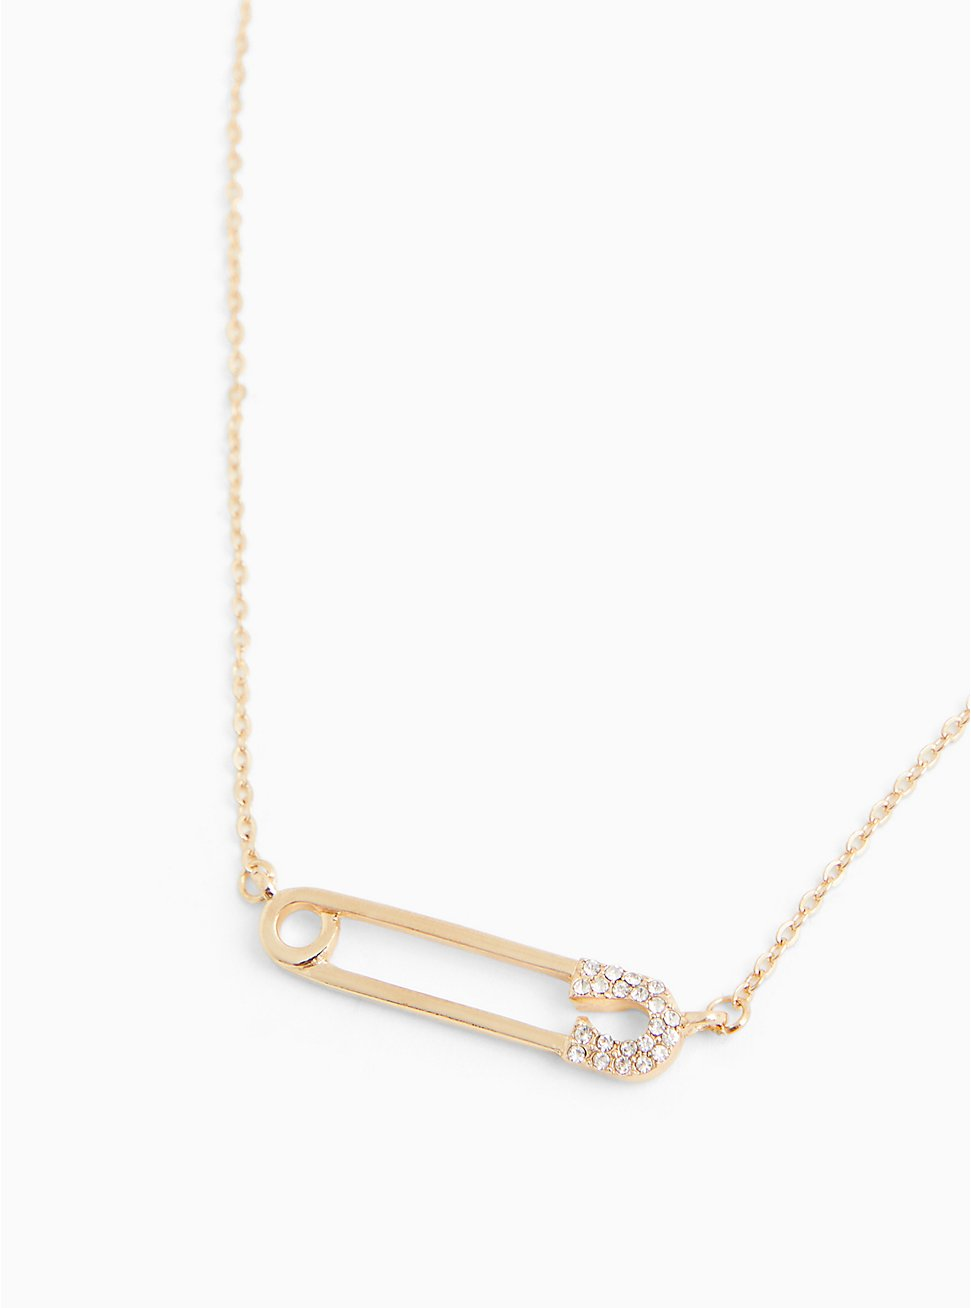 Gold-Tone Safety Pin Necklace, , hi-res